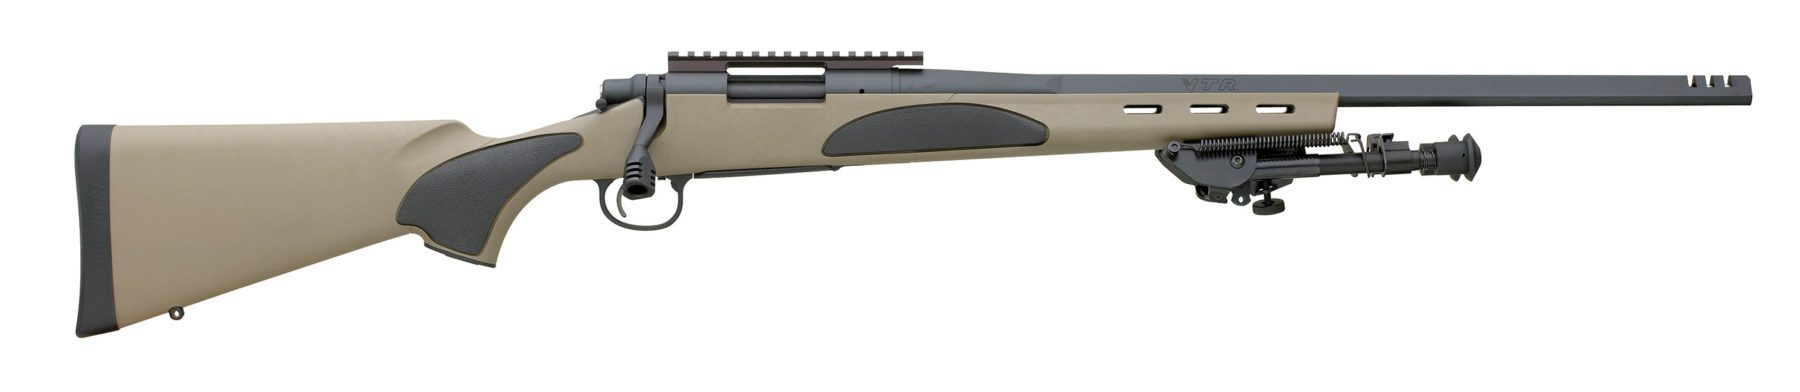 Remington 700 .308